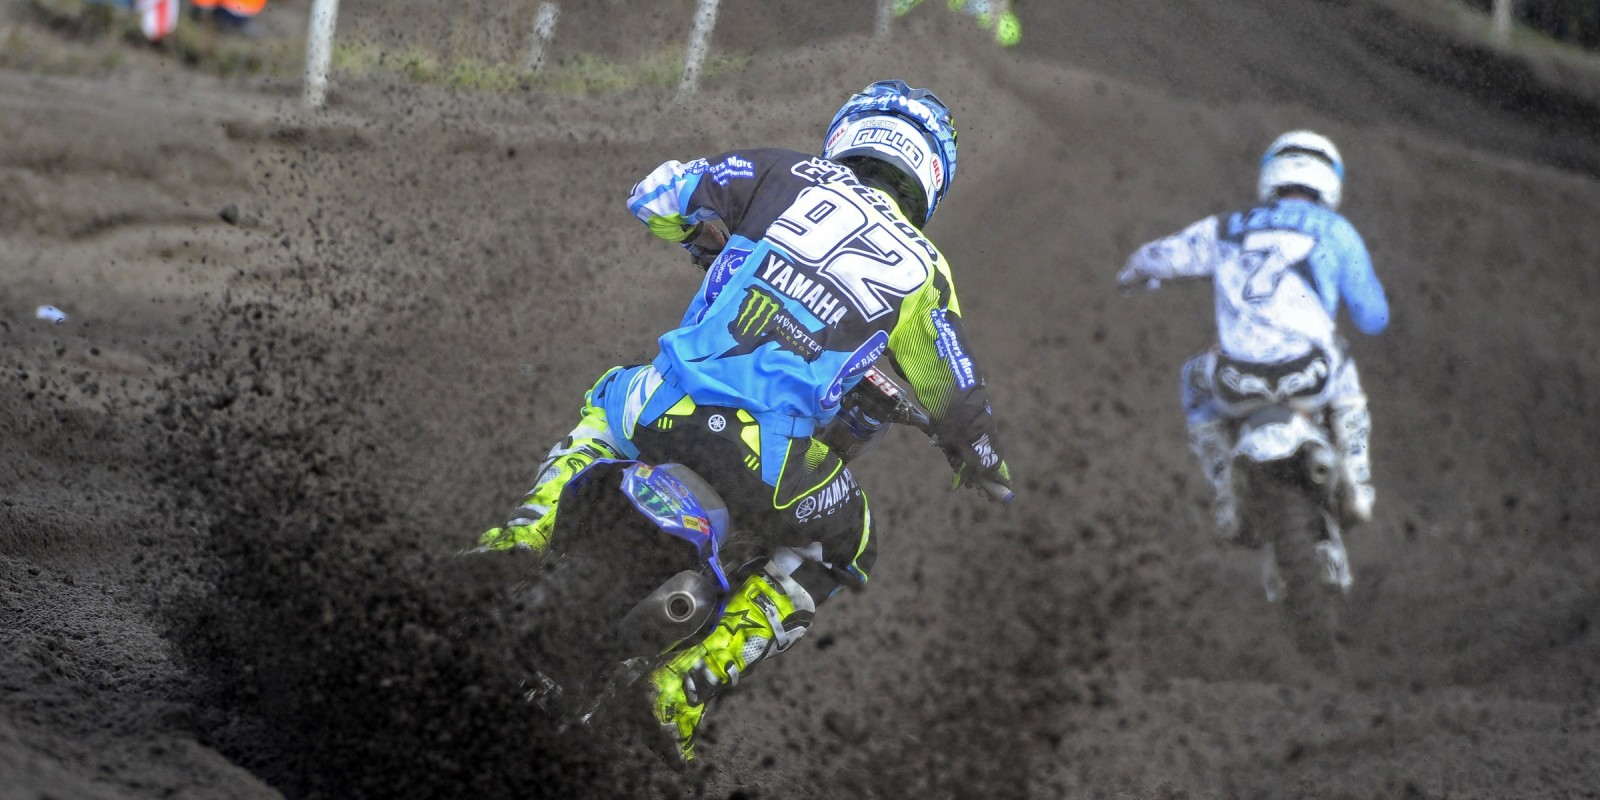 Valentin Guillod at the 2016 MXGP of Europe